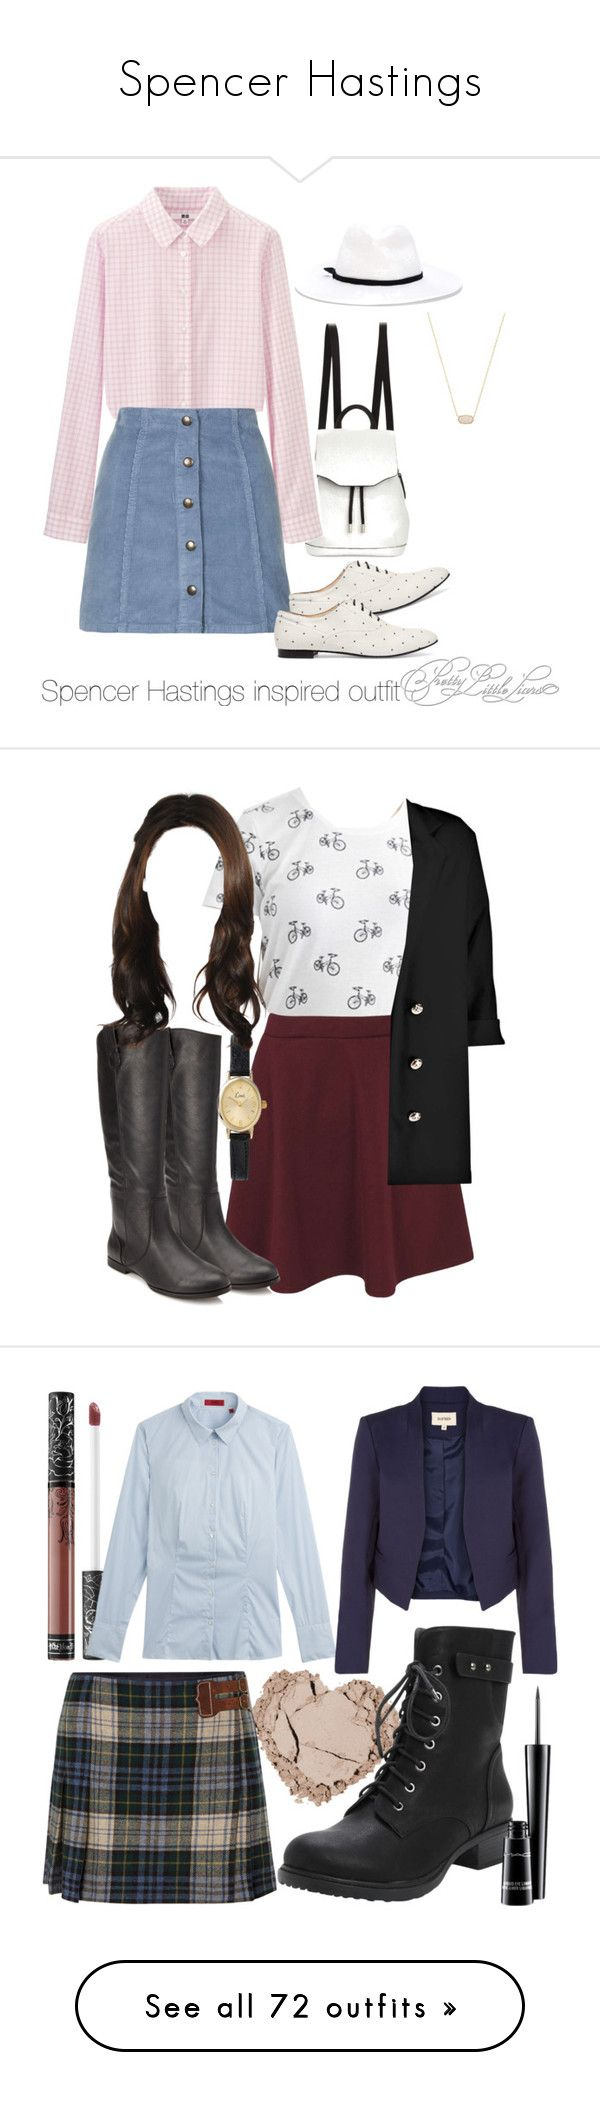 """Spencer Hastings"" by xxoxxo-76 ❤ liked on Polyvore featuring rag & bone, Uniqlo, Topshop, Tod's, Forte Forte, Kendra Scott, bags, handbags, bolsas and purses"